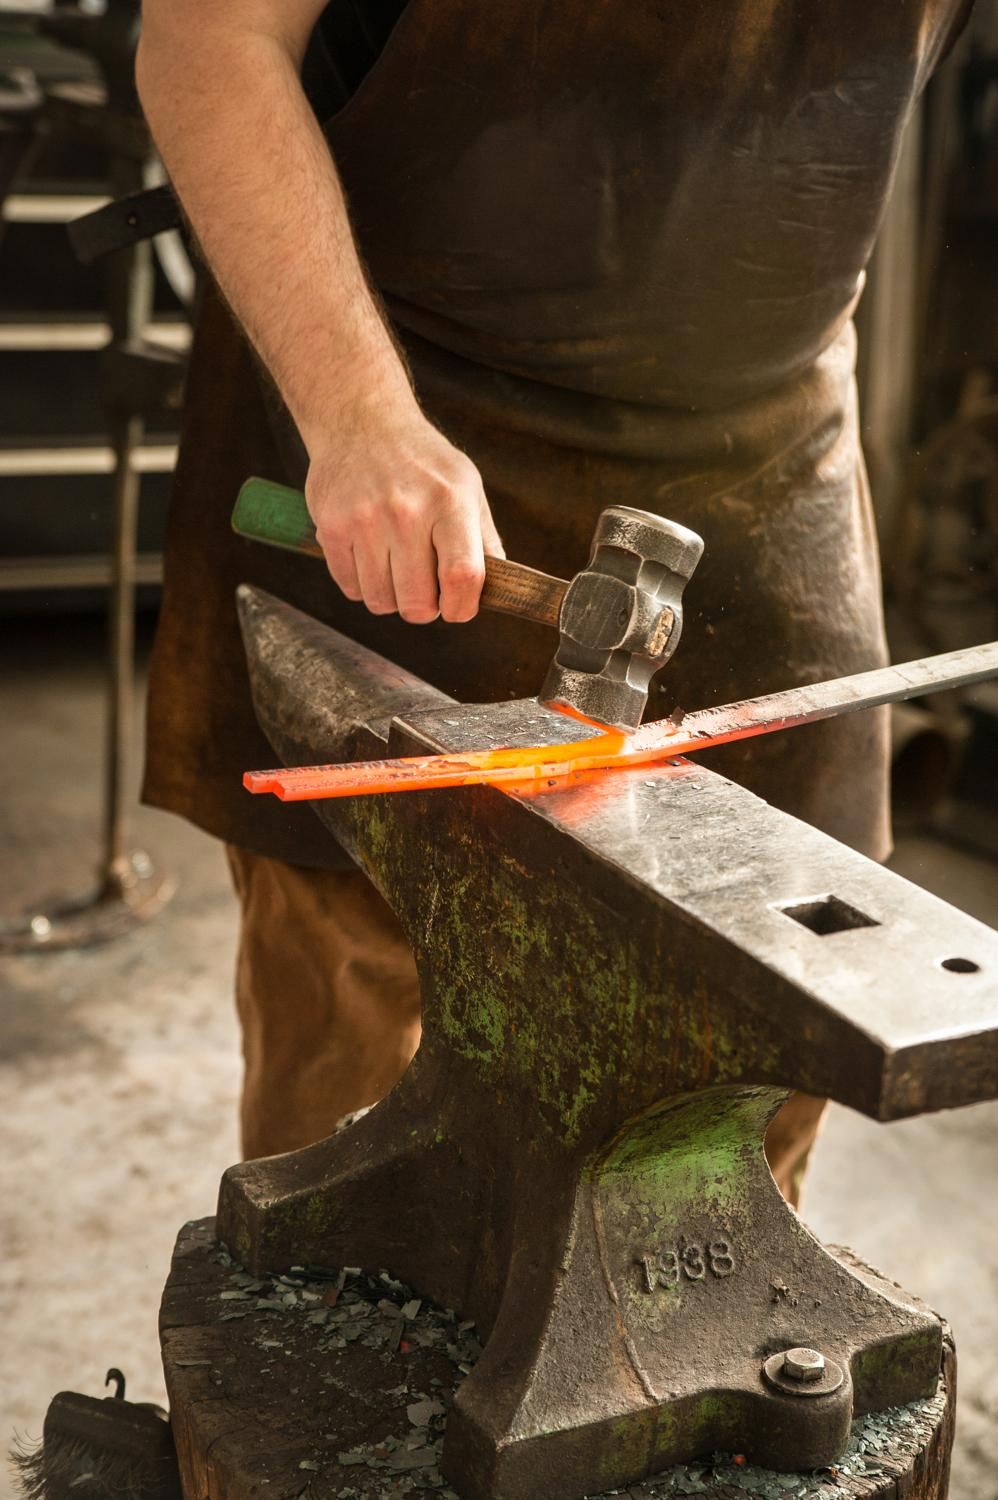 Gilsdorf hammers a bar of steel, blazing hot from the forge. / Image: Melissa Doss Sliney